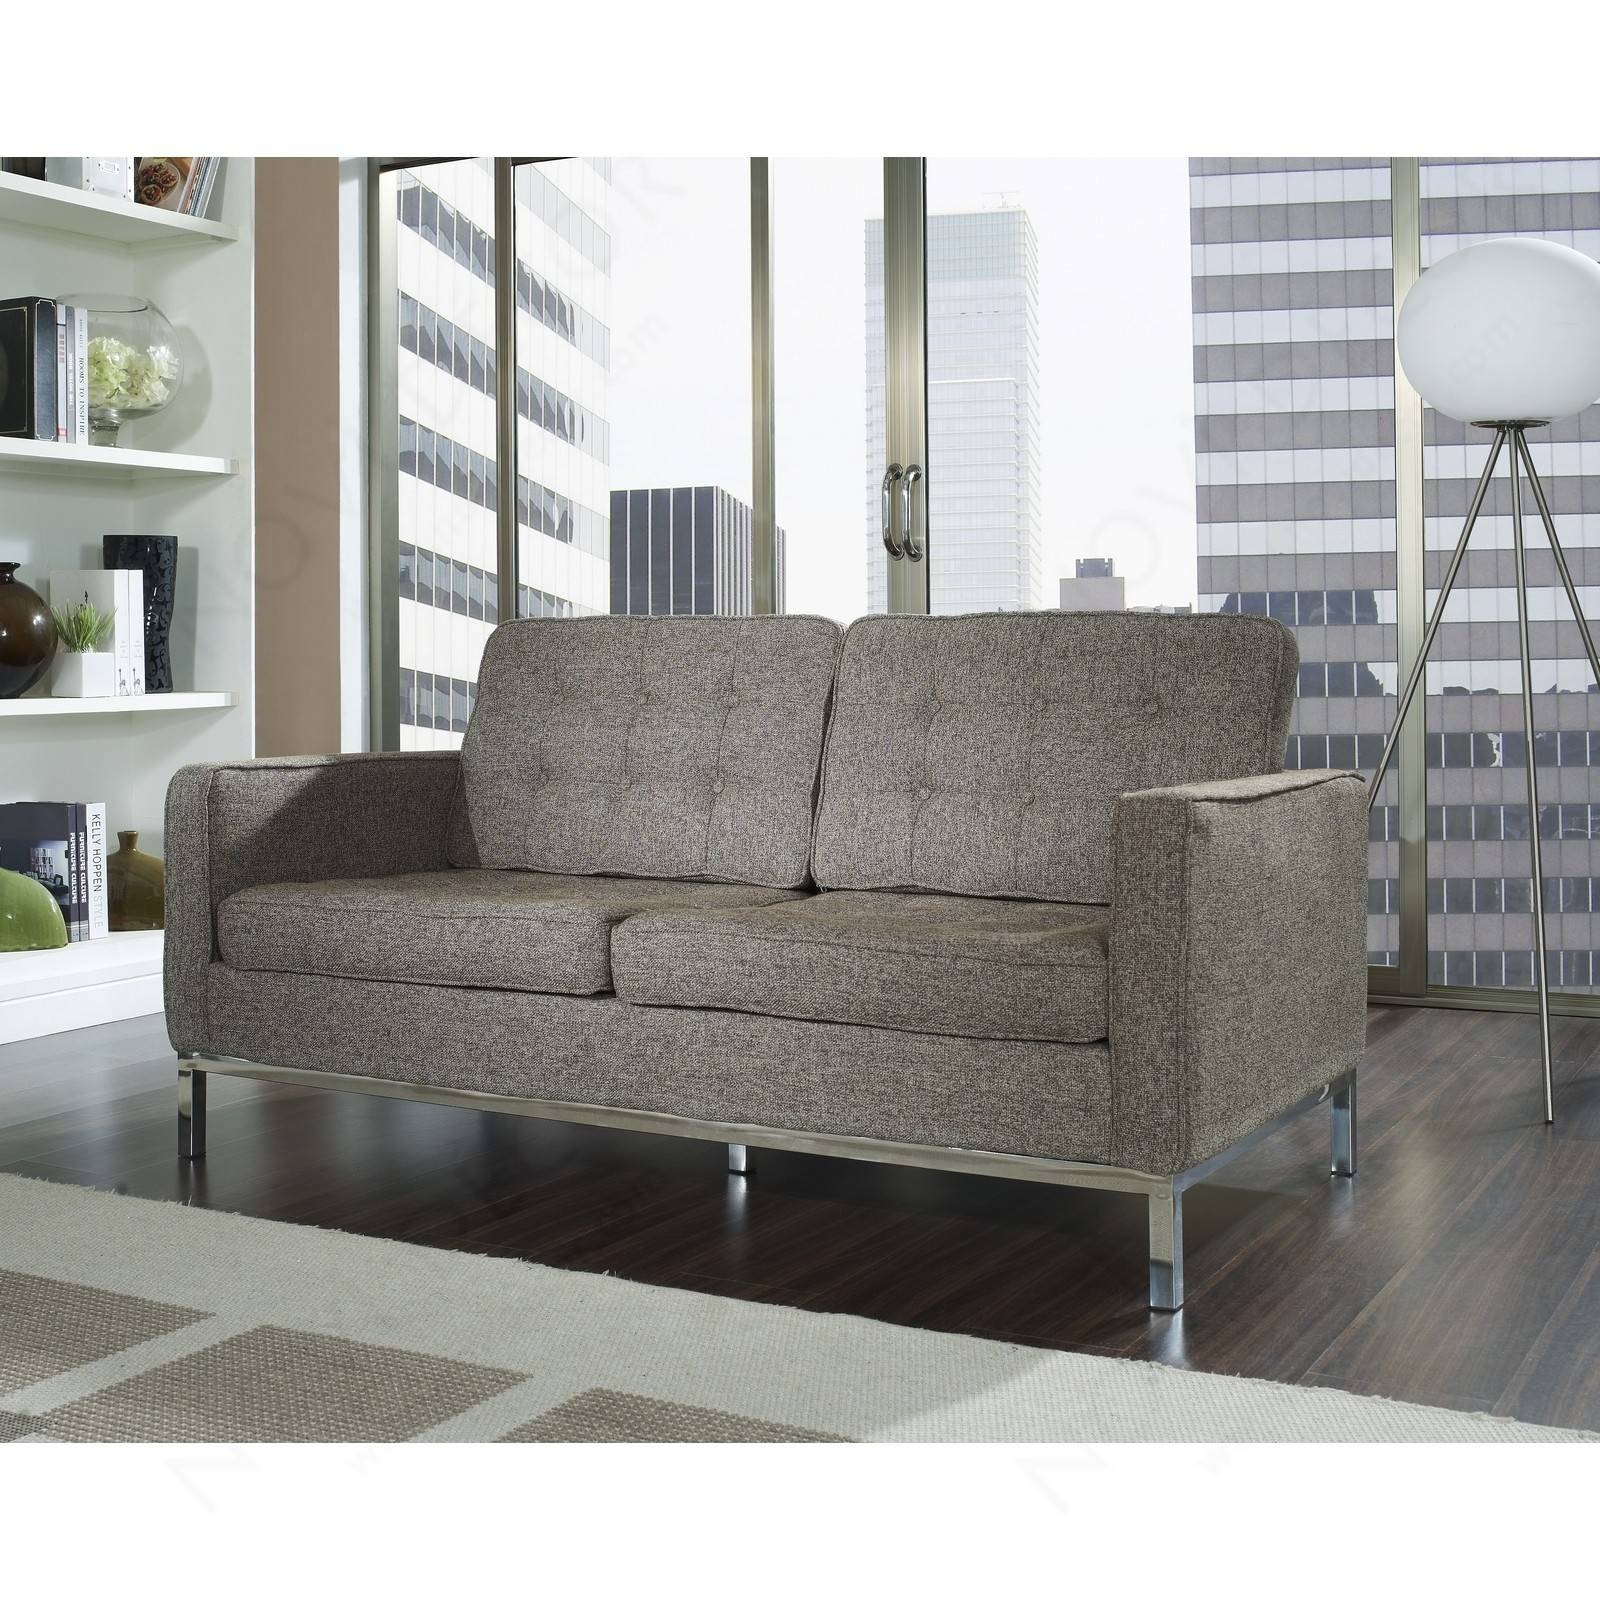 Florence Style Loveseat In Wool (Multiple Colors) | Designer within Florence Sofas and Loveseats (Image 18 of 25)